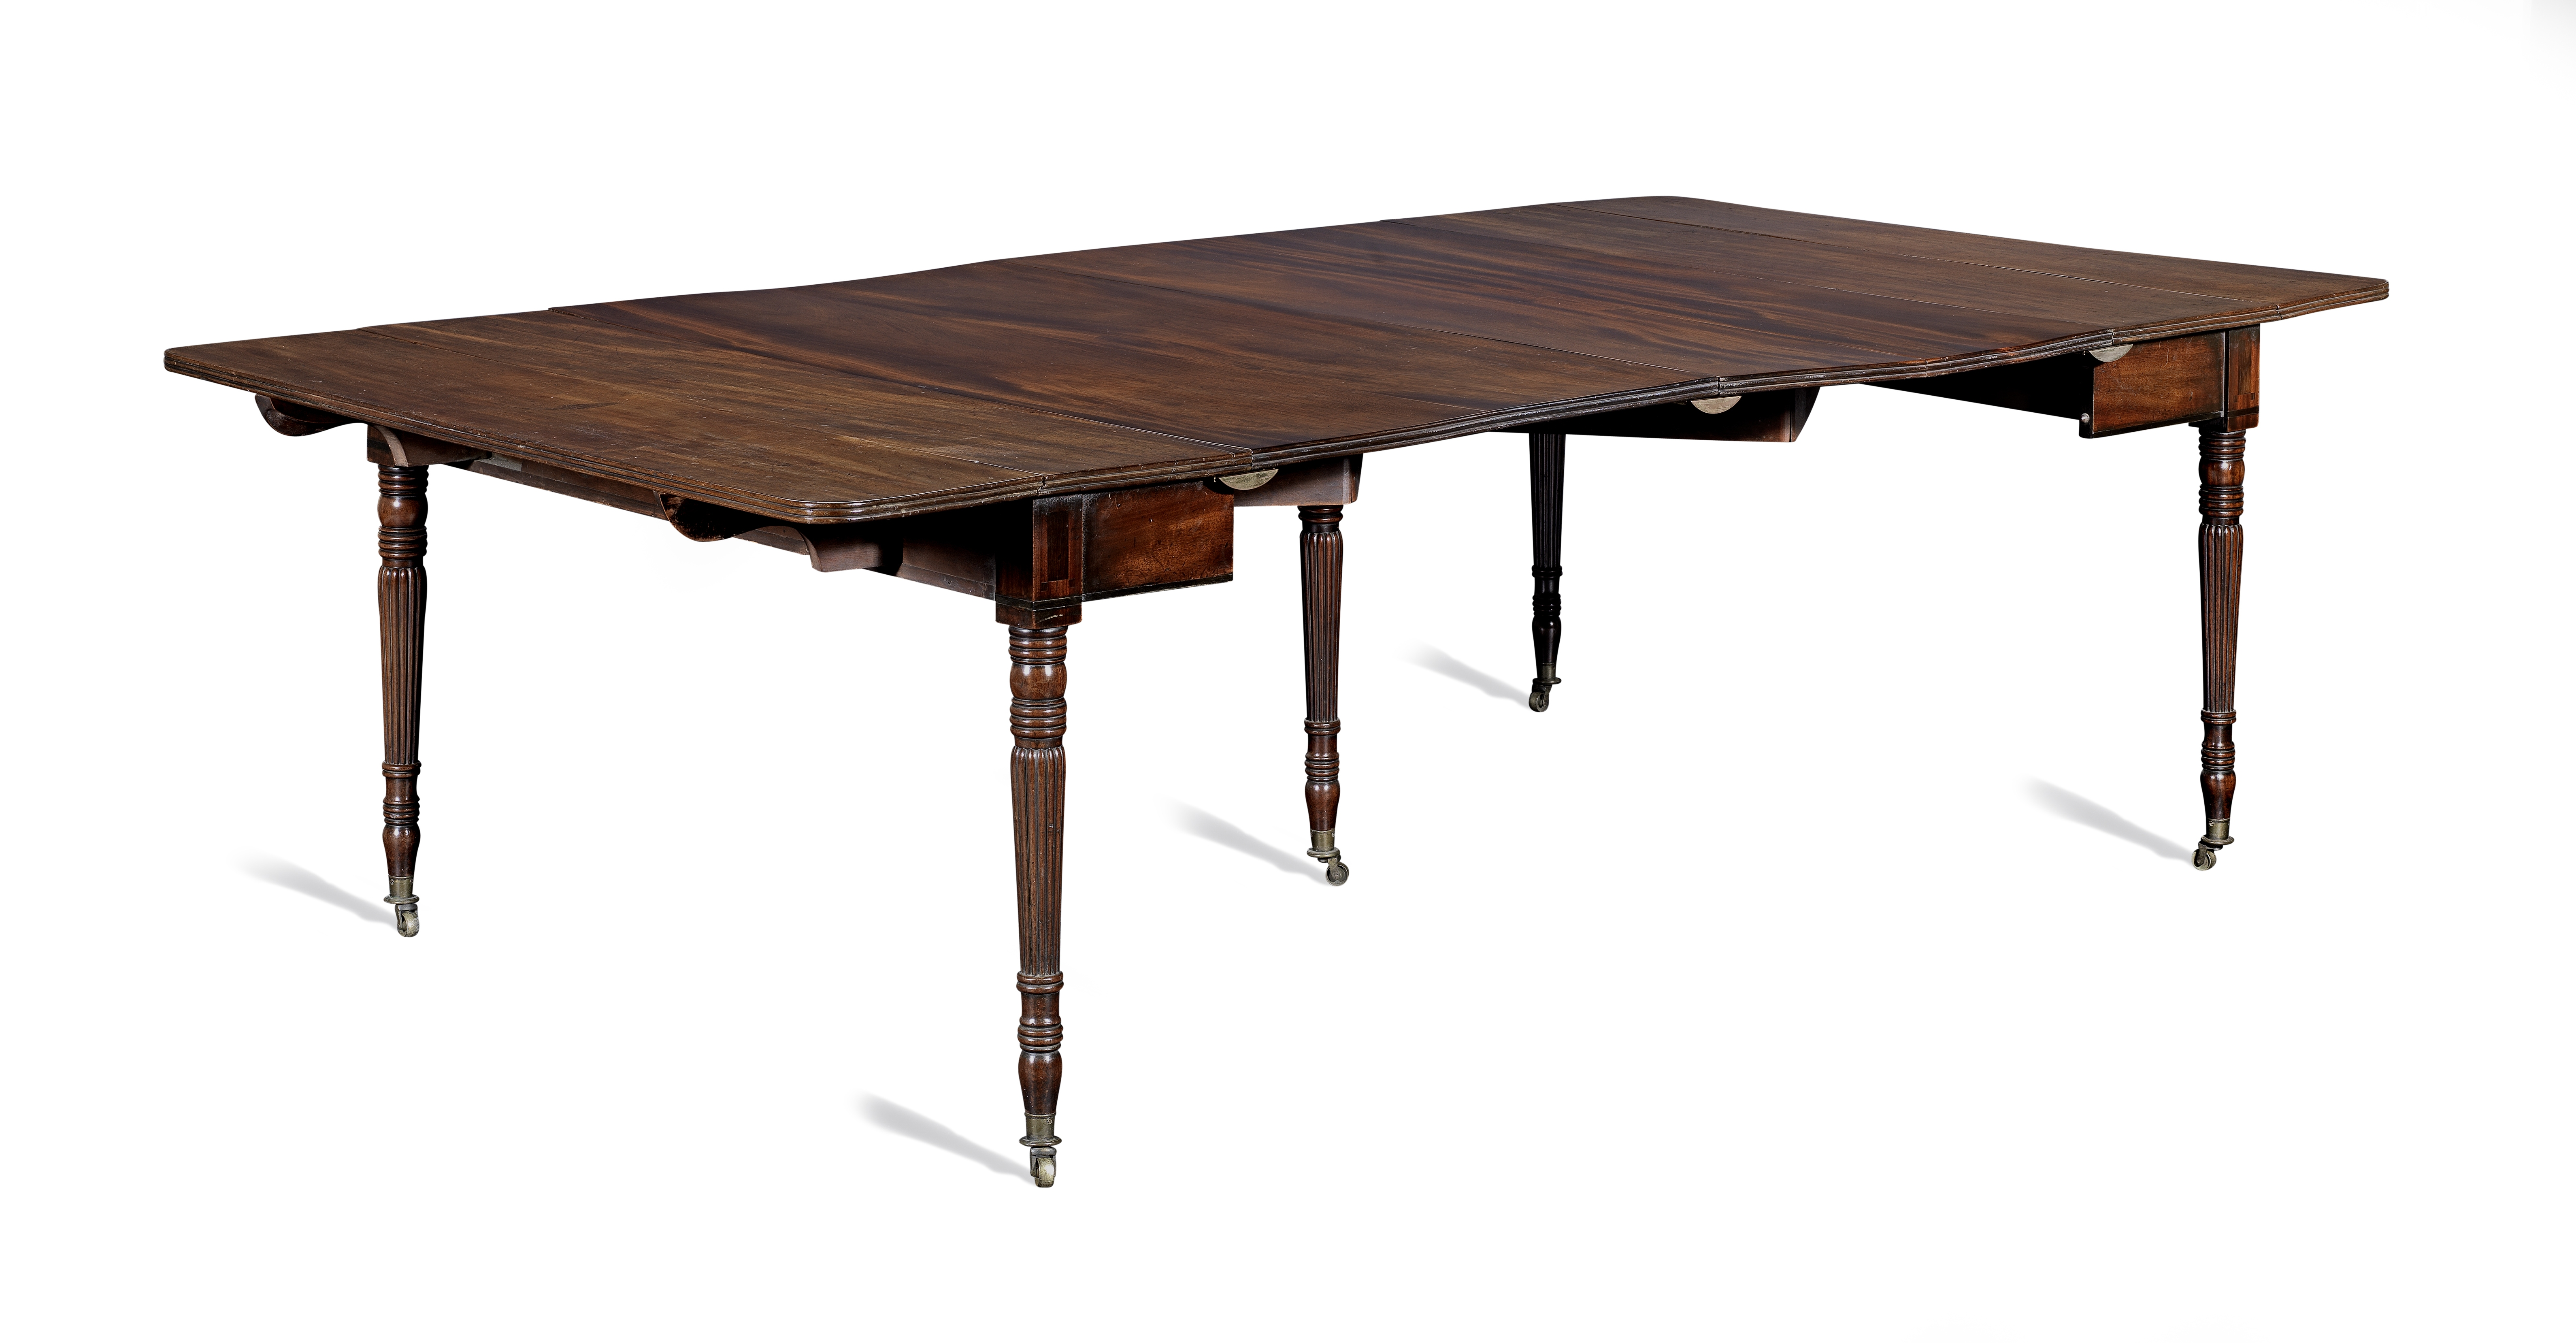 A Regency mahogany and ebonised inlaid concertina-action extending dining table